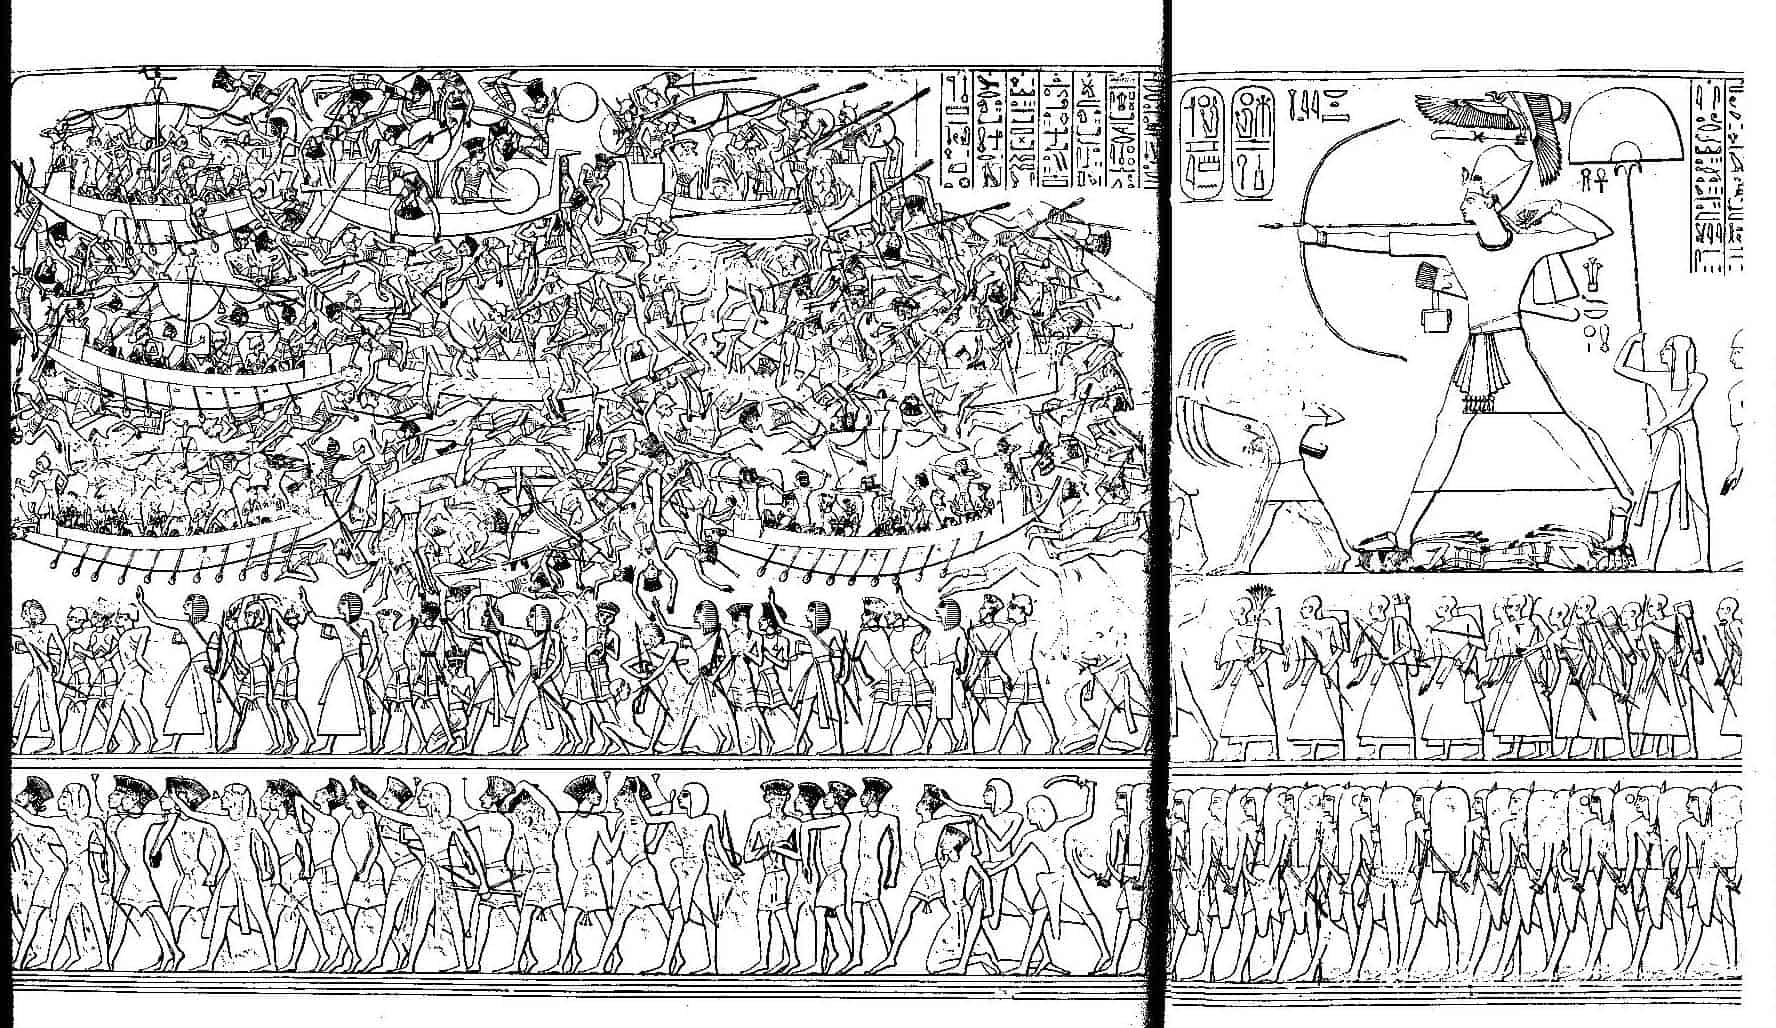 The Sea Peoples – lost civilization